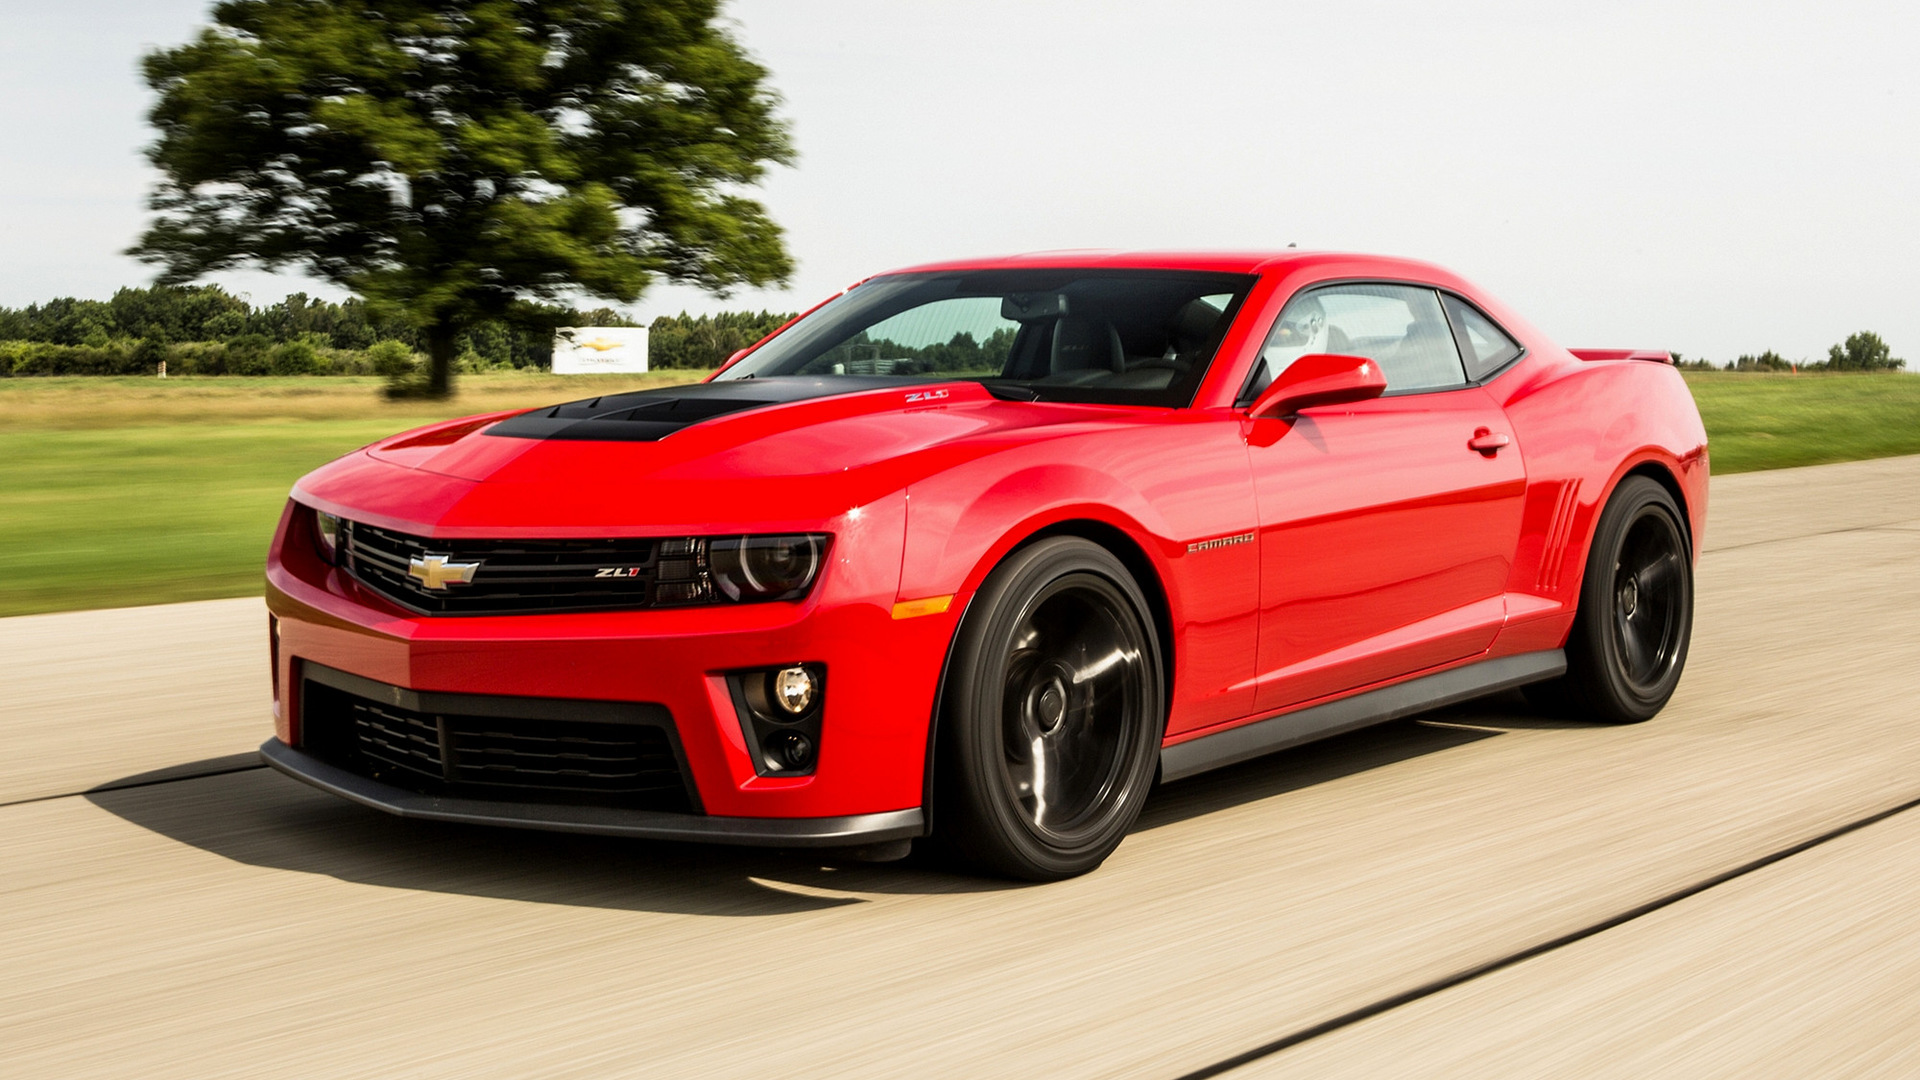 Chevrolet Camaro ZL1 2012 Wallpapers and HD Images 1920x1080